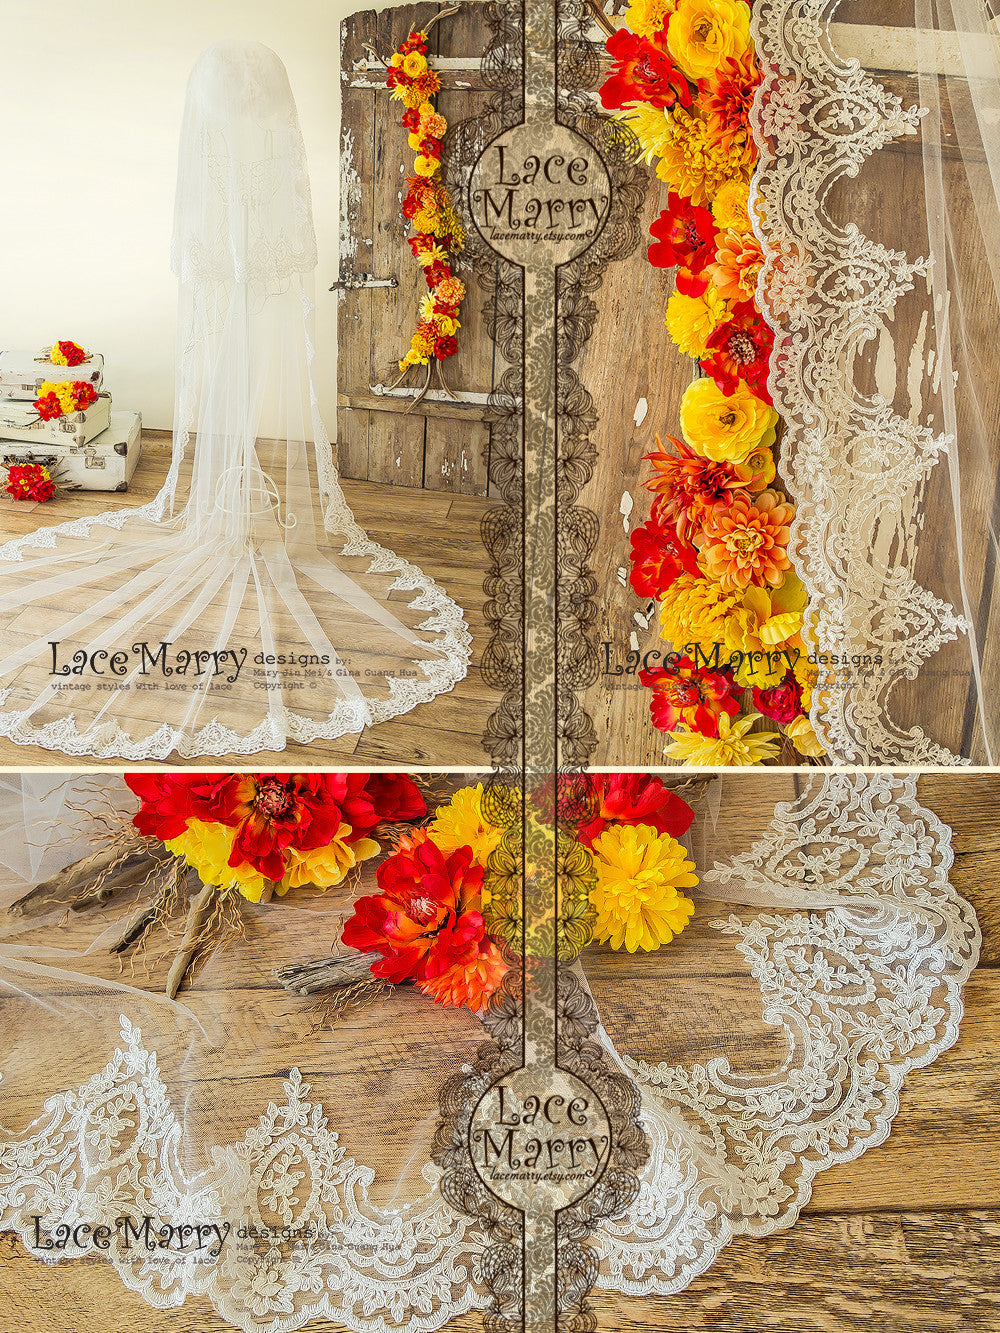 Double Layer Bridal Veil with Baroque Ornament Lace Trim